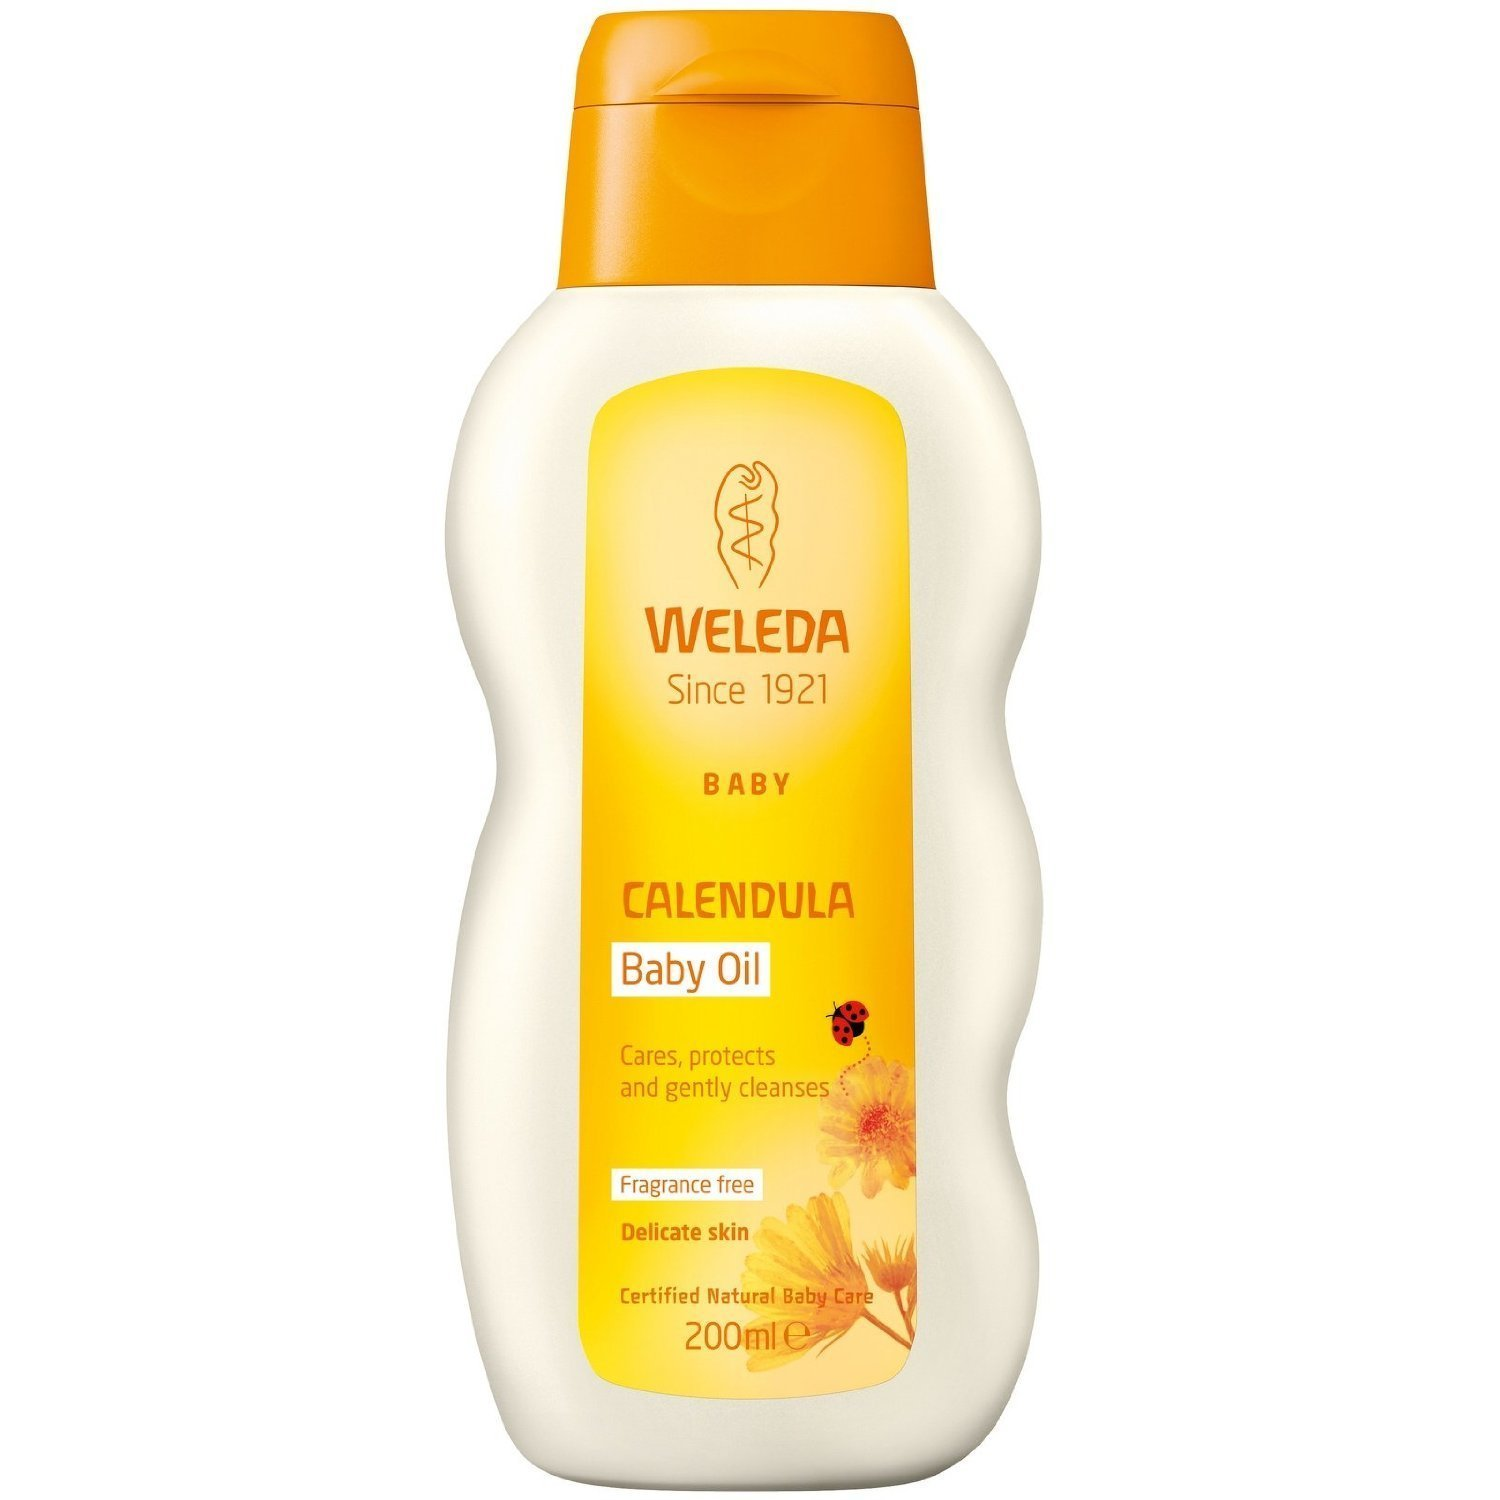 Weleda Calendula Baby Oil 200ml X 2 (Pack of 2) WELEDA (UK)